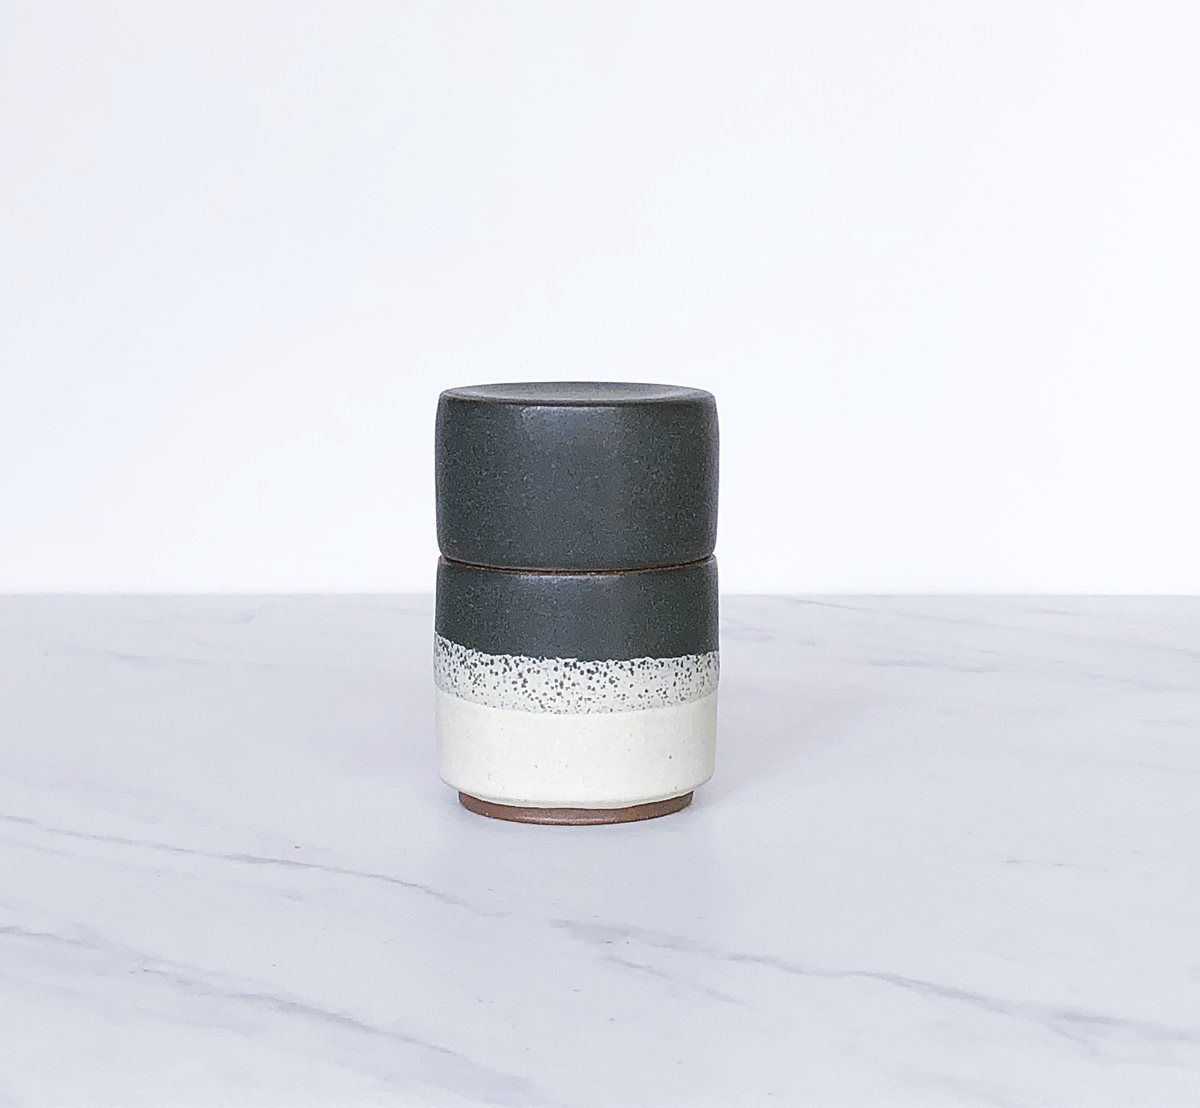 Image of Ceramic match holder with lid, glazed in matte charcoal + cream